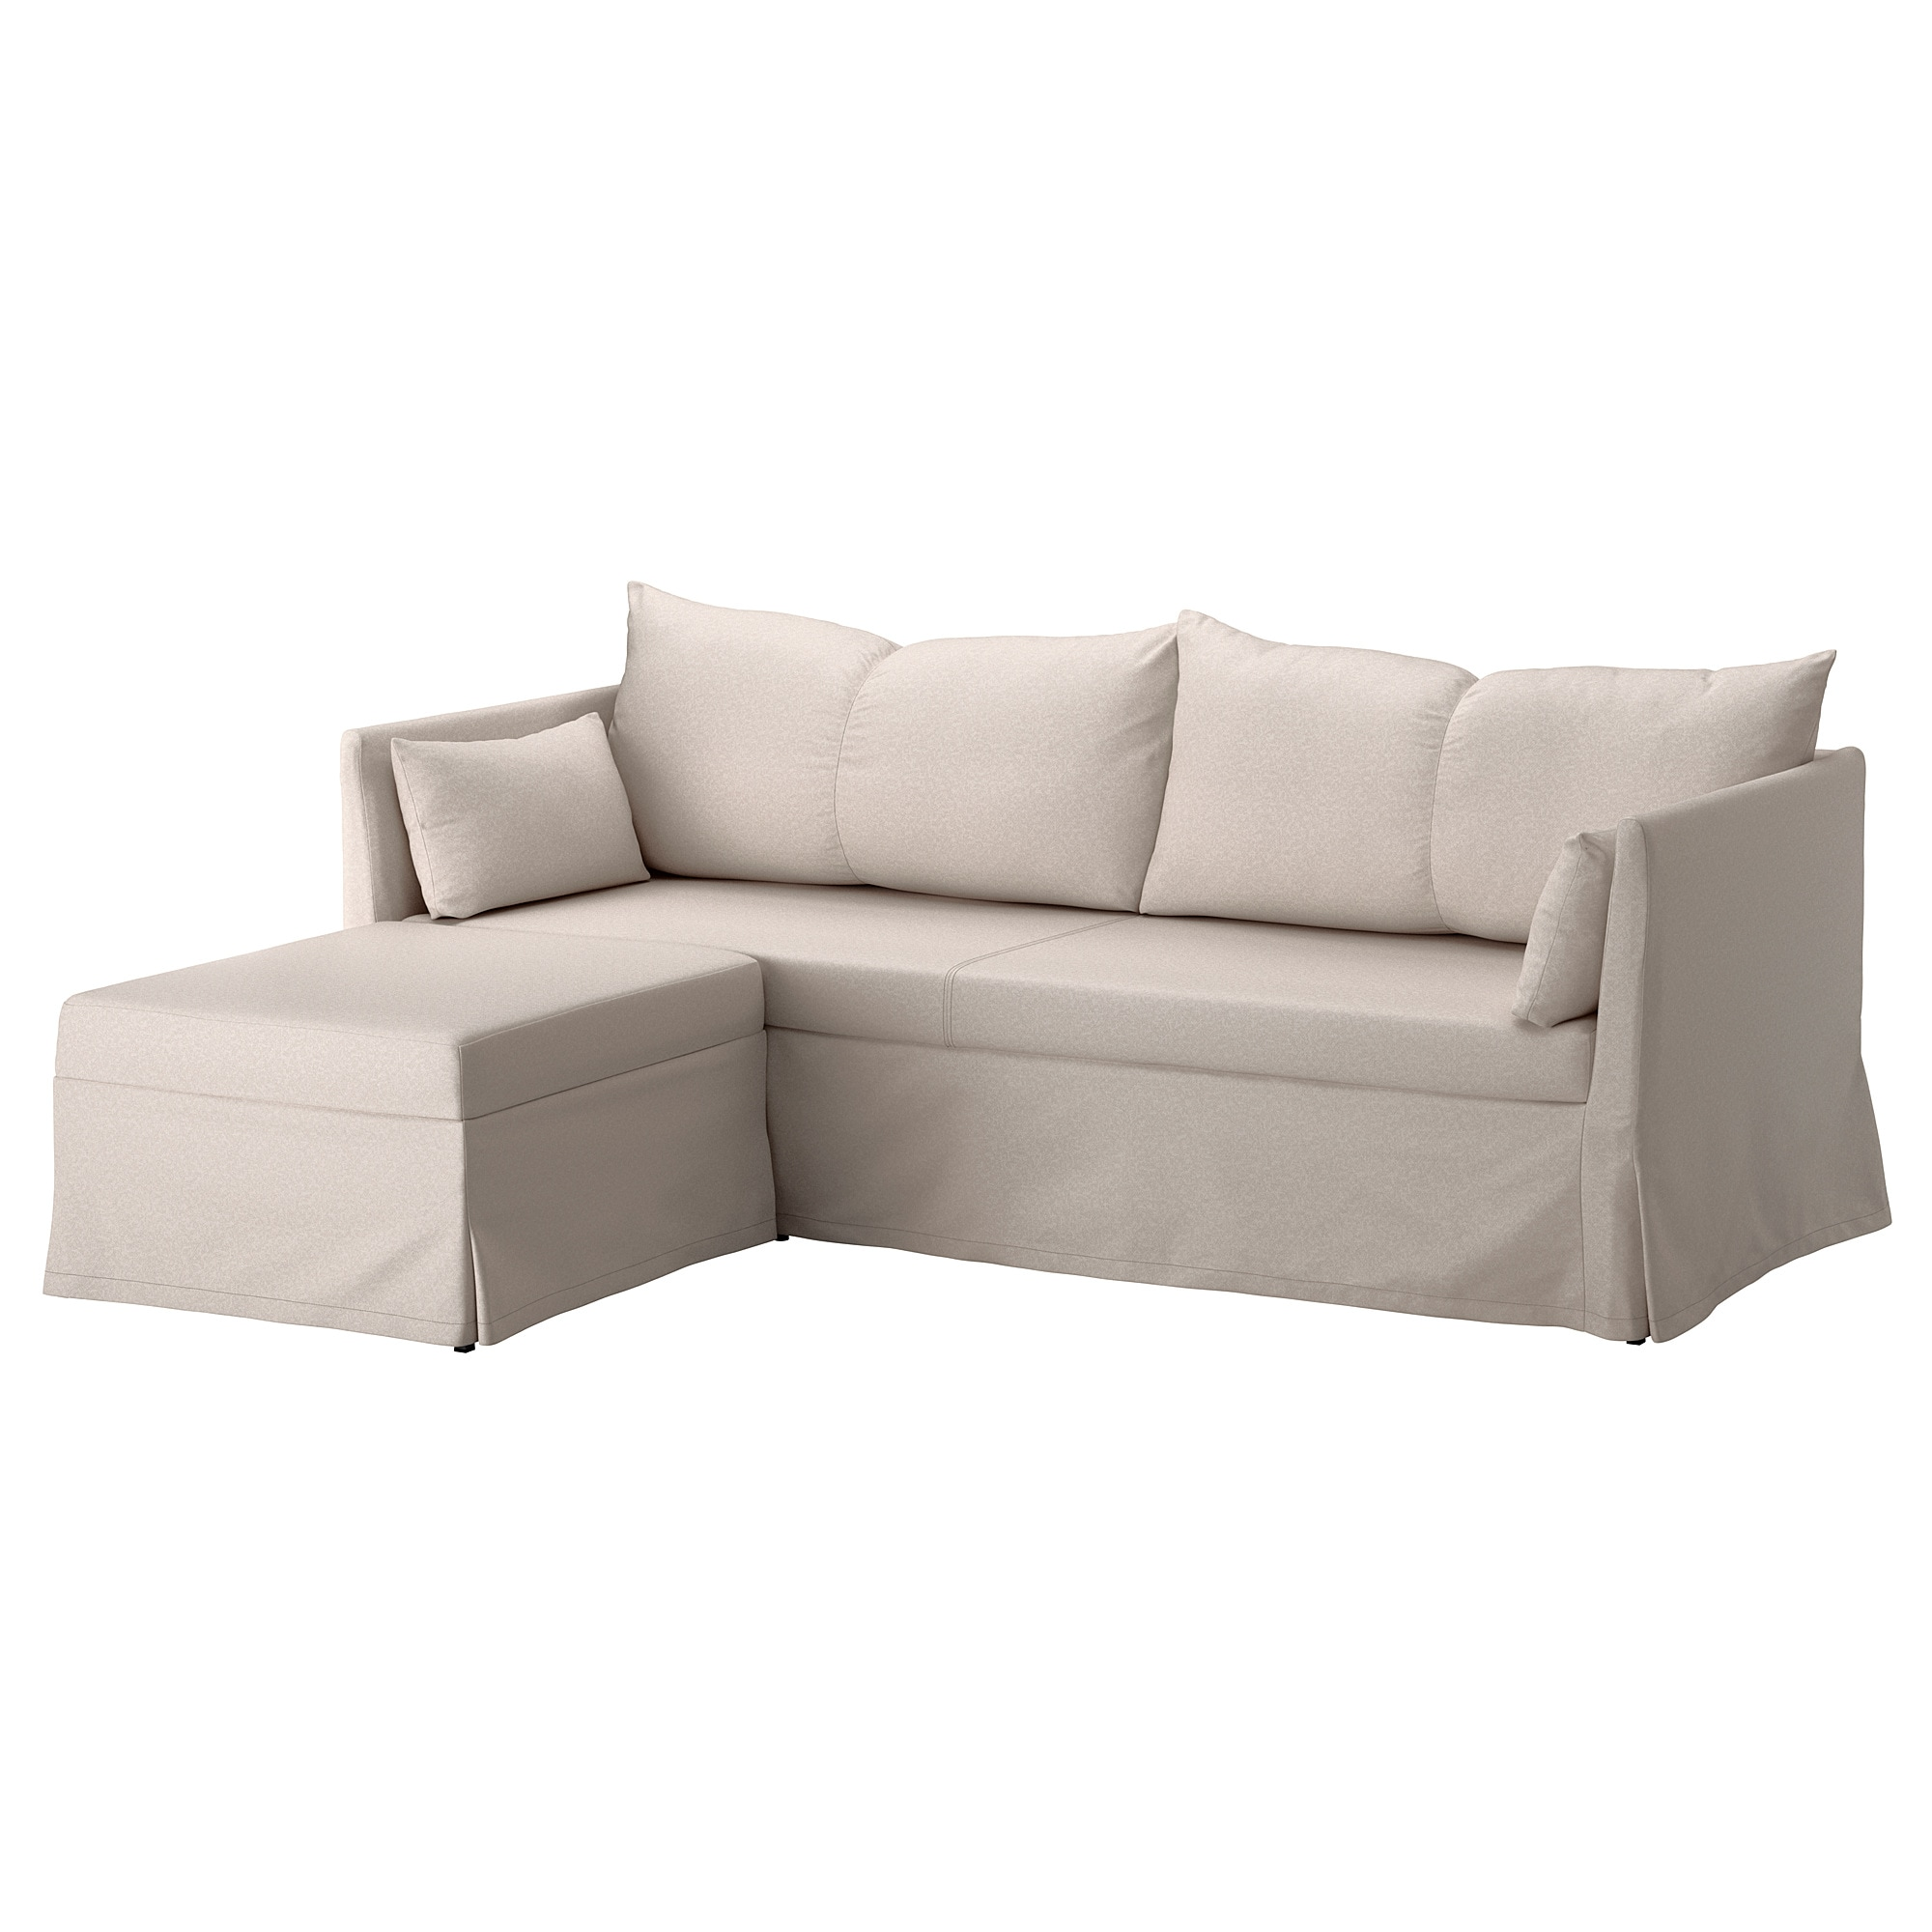 SANDBACKEN Sleeper Sectional, 3 Seat